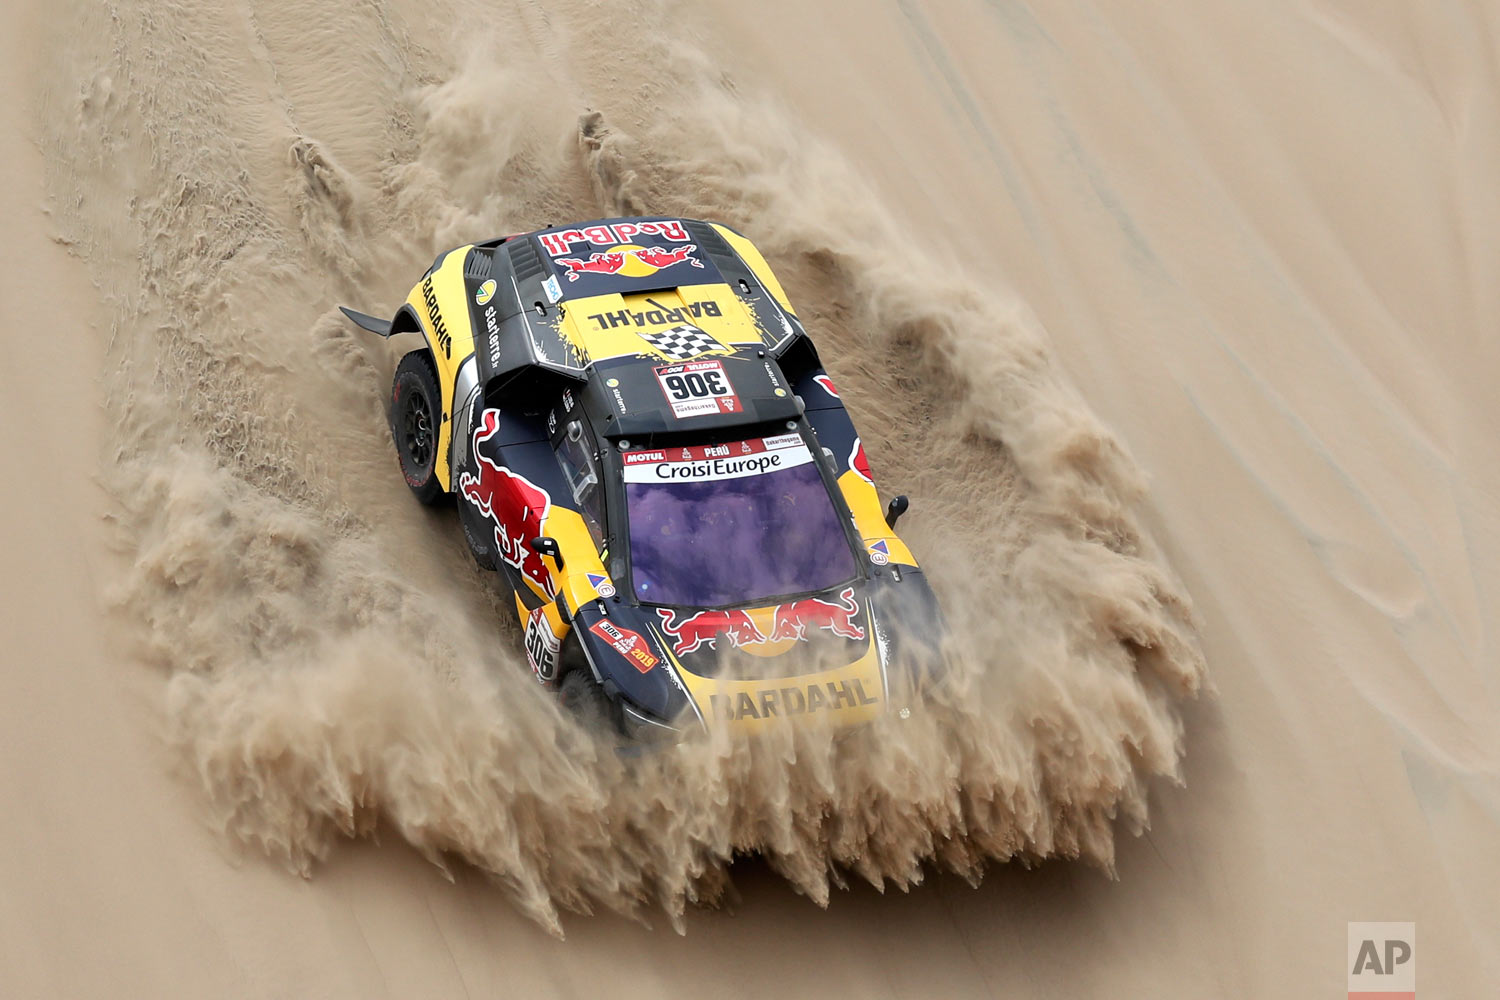 Driver Sebastien Loeb, of France, and co-driver Daniel Elena, of Monaco, race their Peugeot during the first stage of the Dakar Rally between Lima and Pisco, Peru, Jan. 7, 2019. (AP Photo/Ricardo Mazalan)